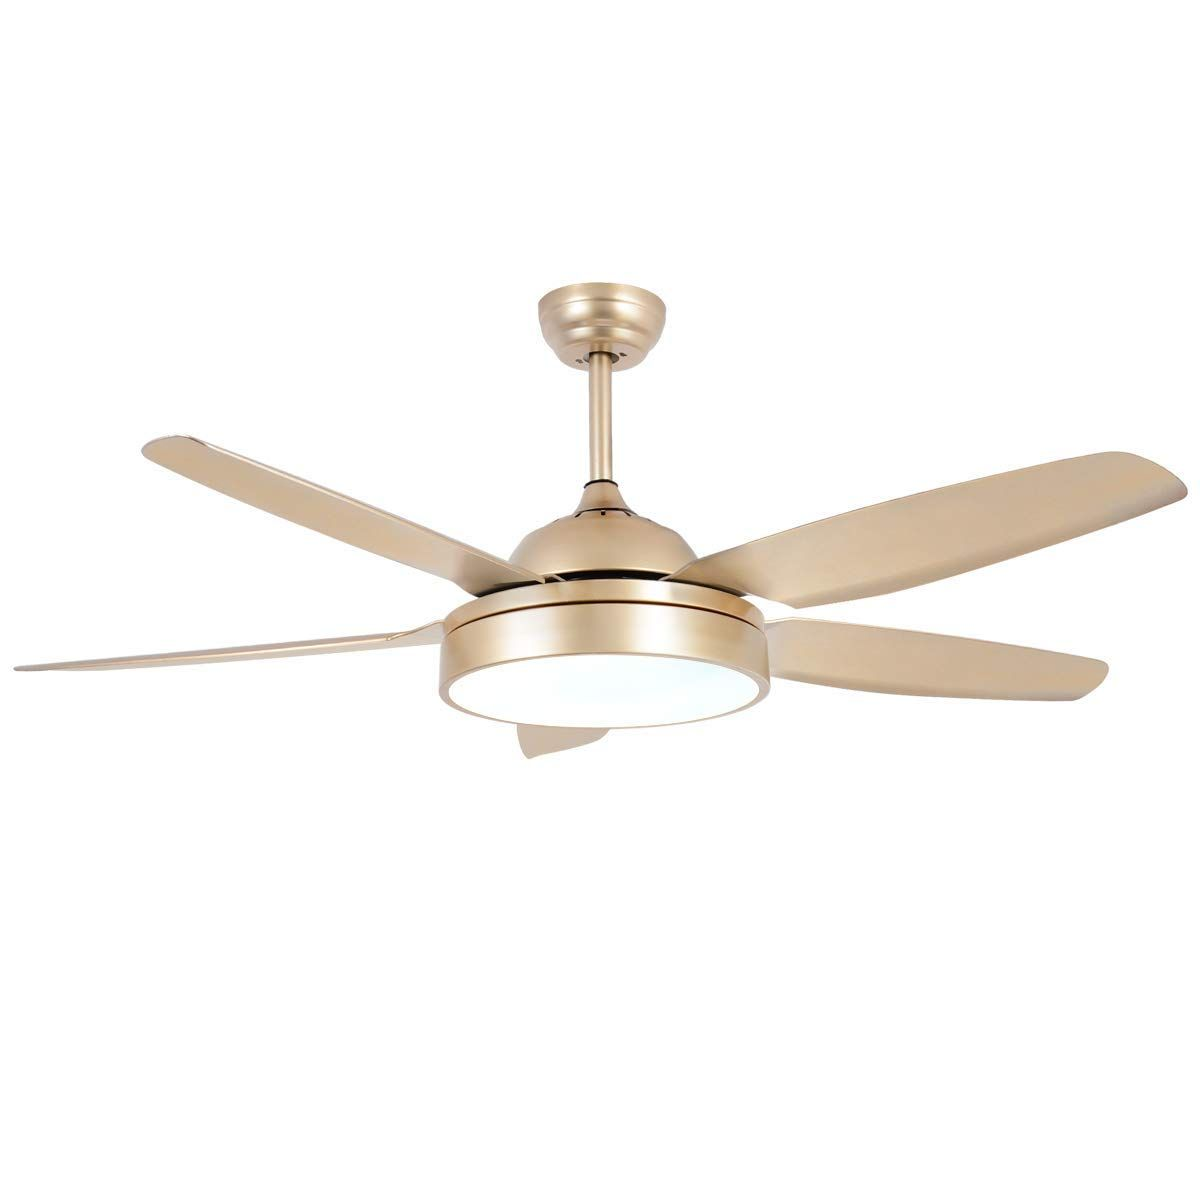 champagne ceiling fan ashton s room in 2019 ceiling fan rh pinterest com